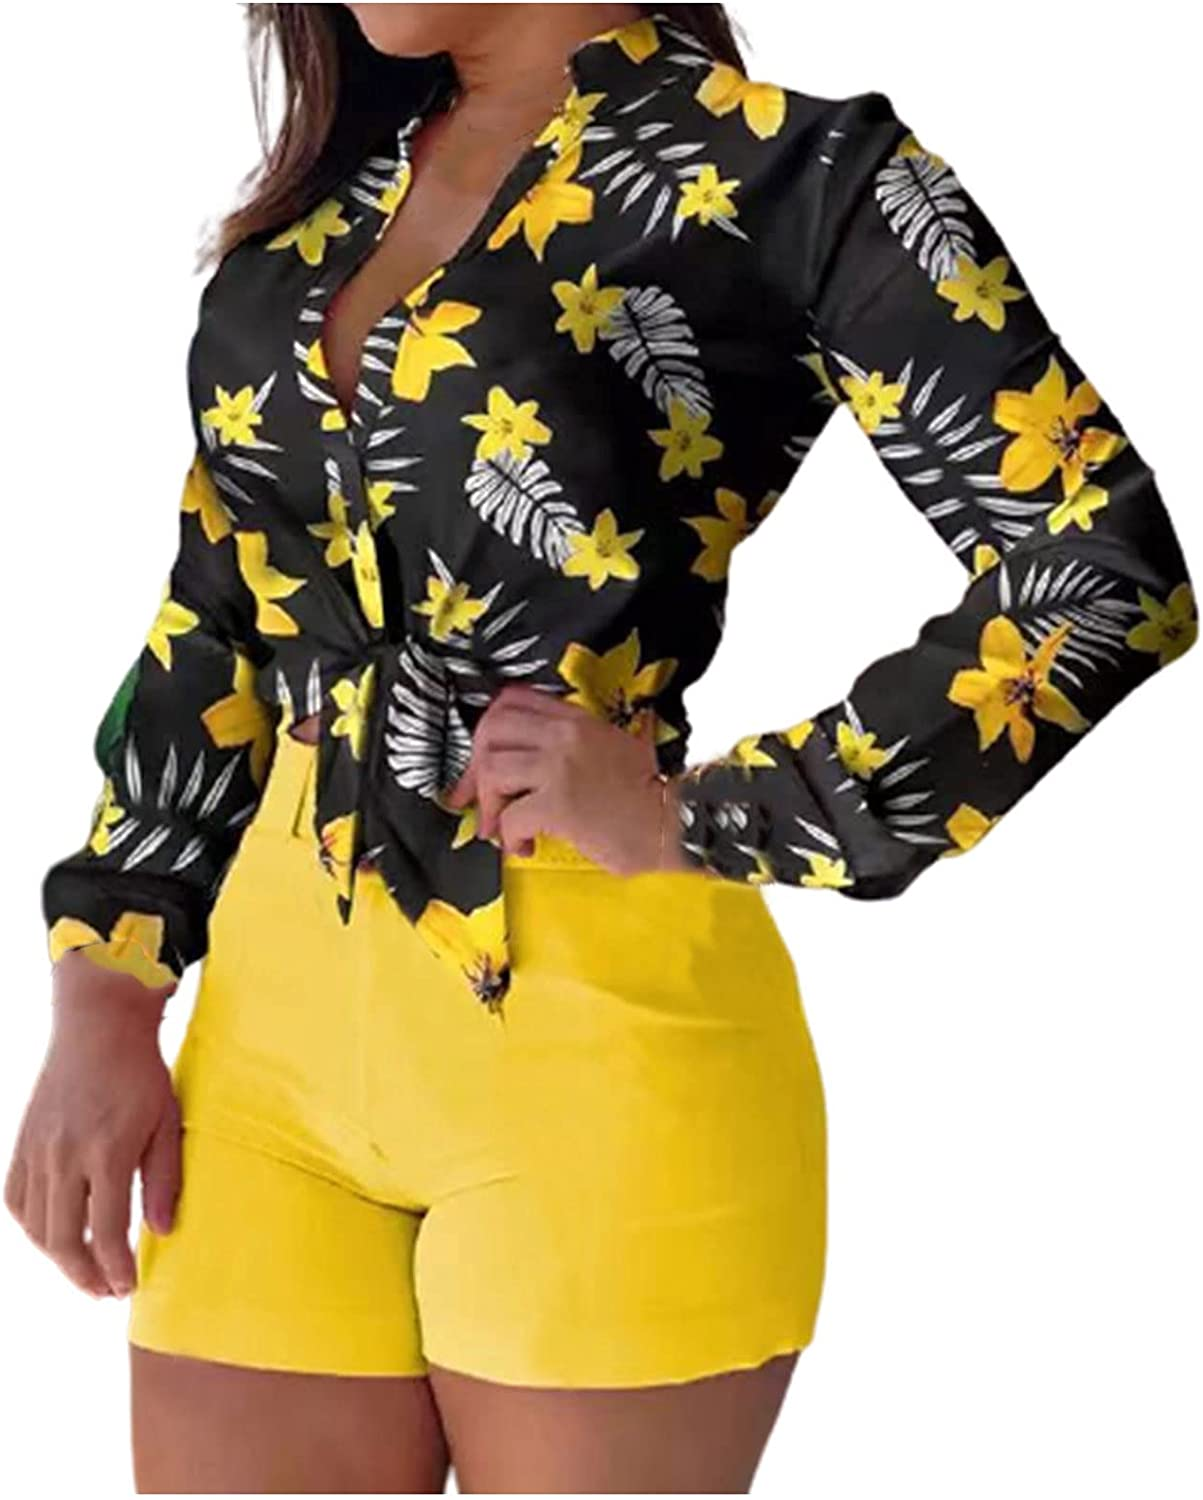 Womens Summer 2 Piece Outfits Fashion Flower Print Long Sleeve Shirt Tops Solid Color Shorts Set Casual Clubwear Suit